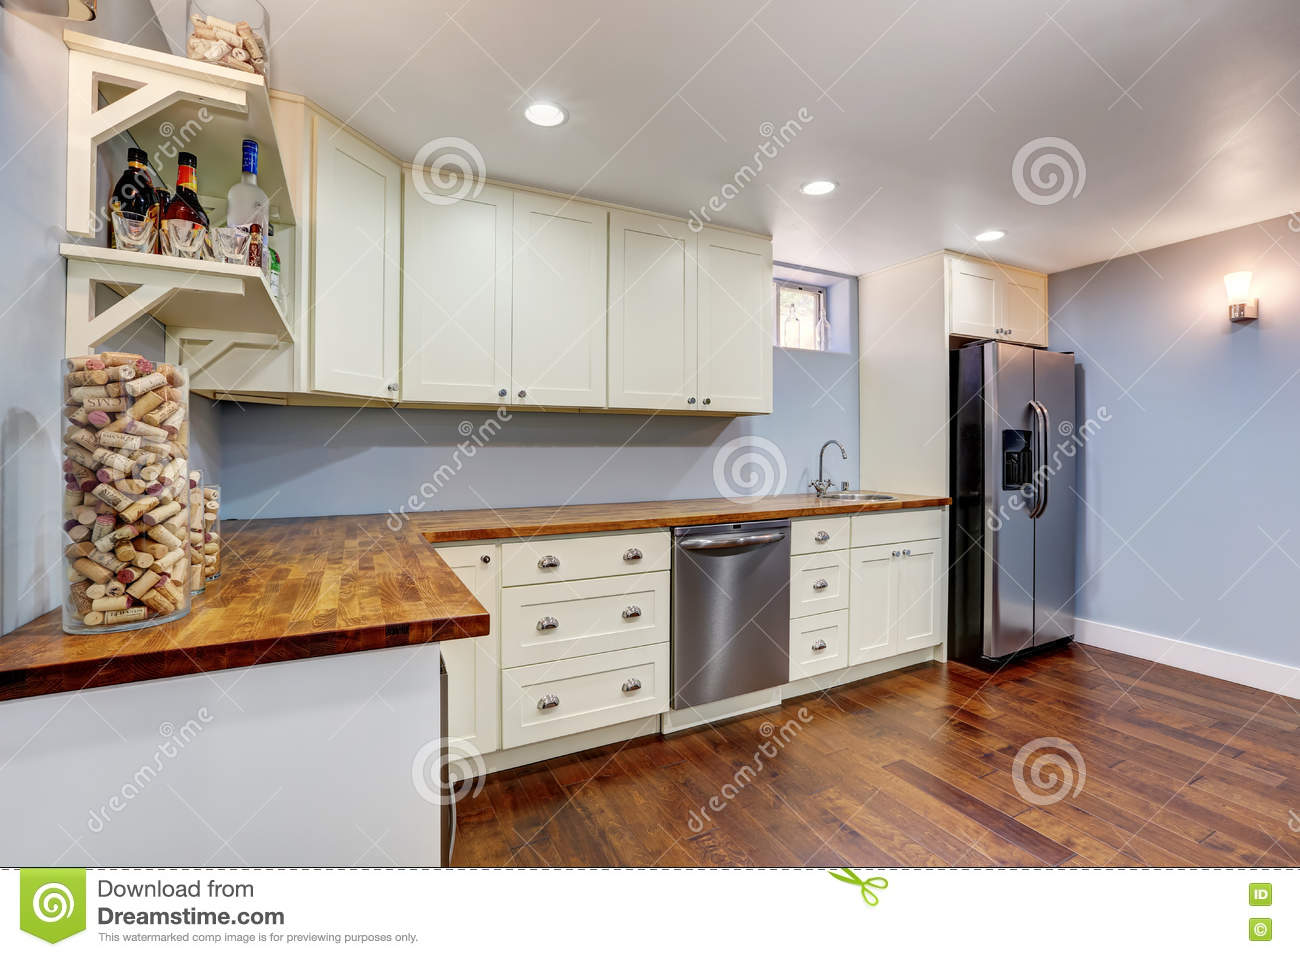 Lavender Kitchen Room In The Basement Of Craftsman House Stock Image Image Of Basement Steel 76509931